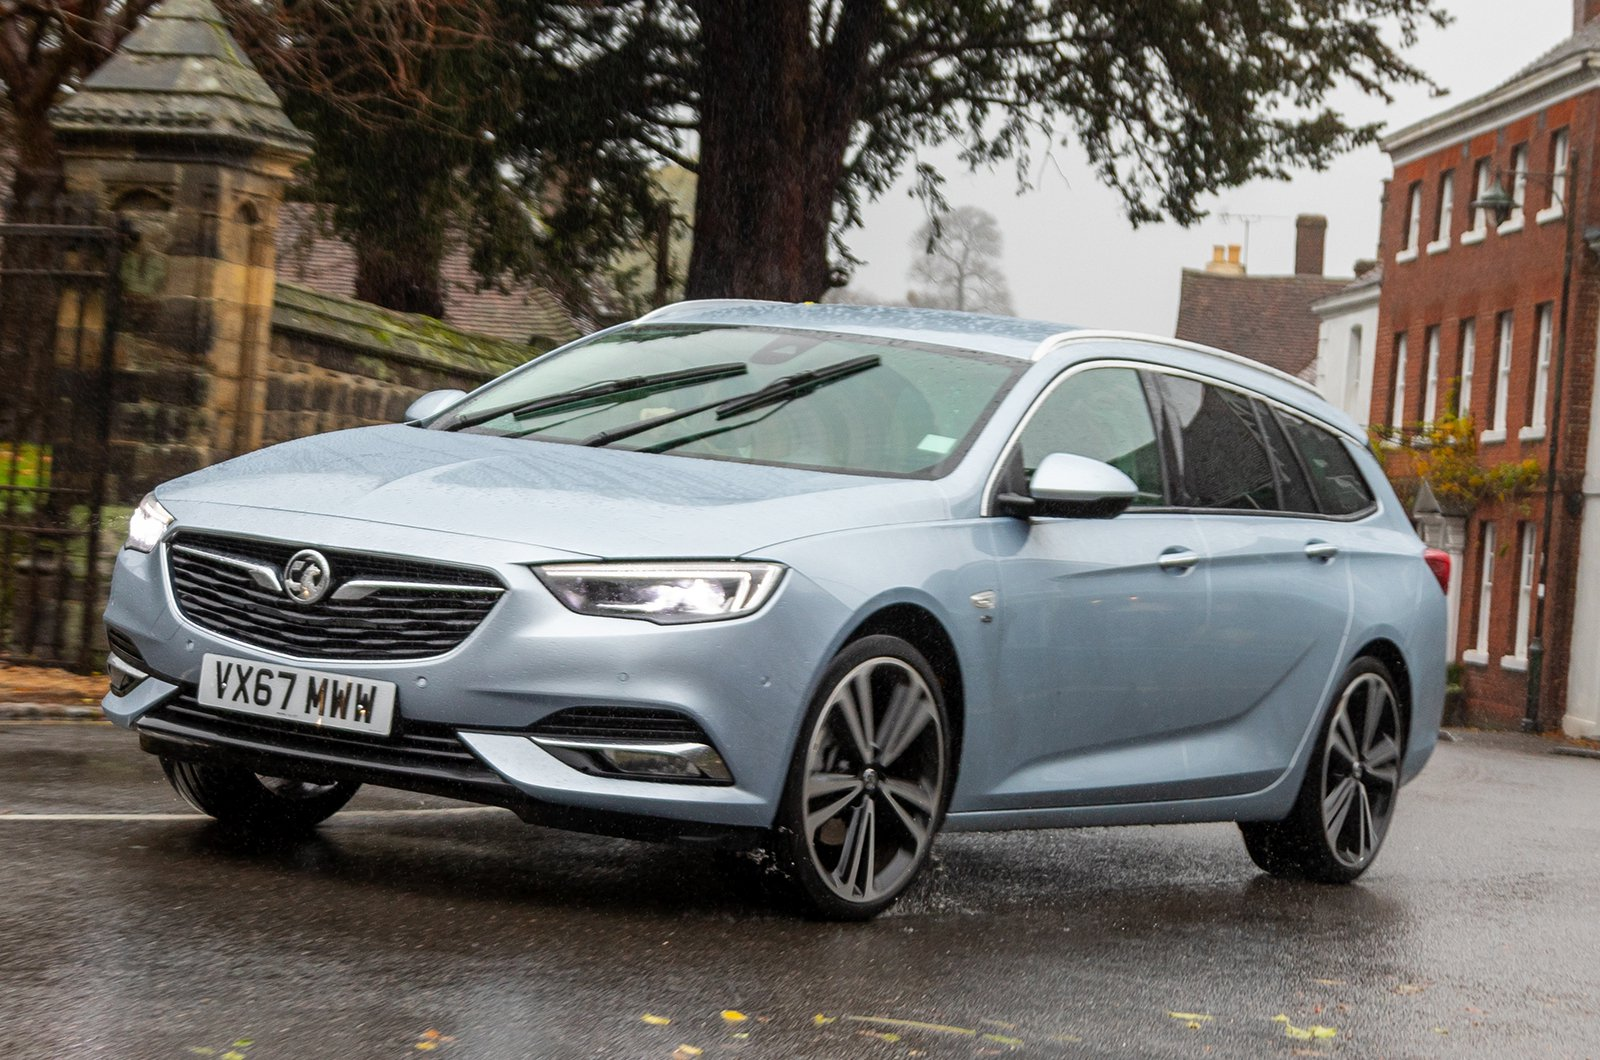 Vauxhall Insignia Sports Tourer estate long-term test